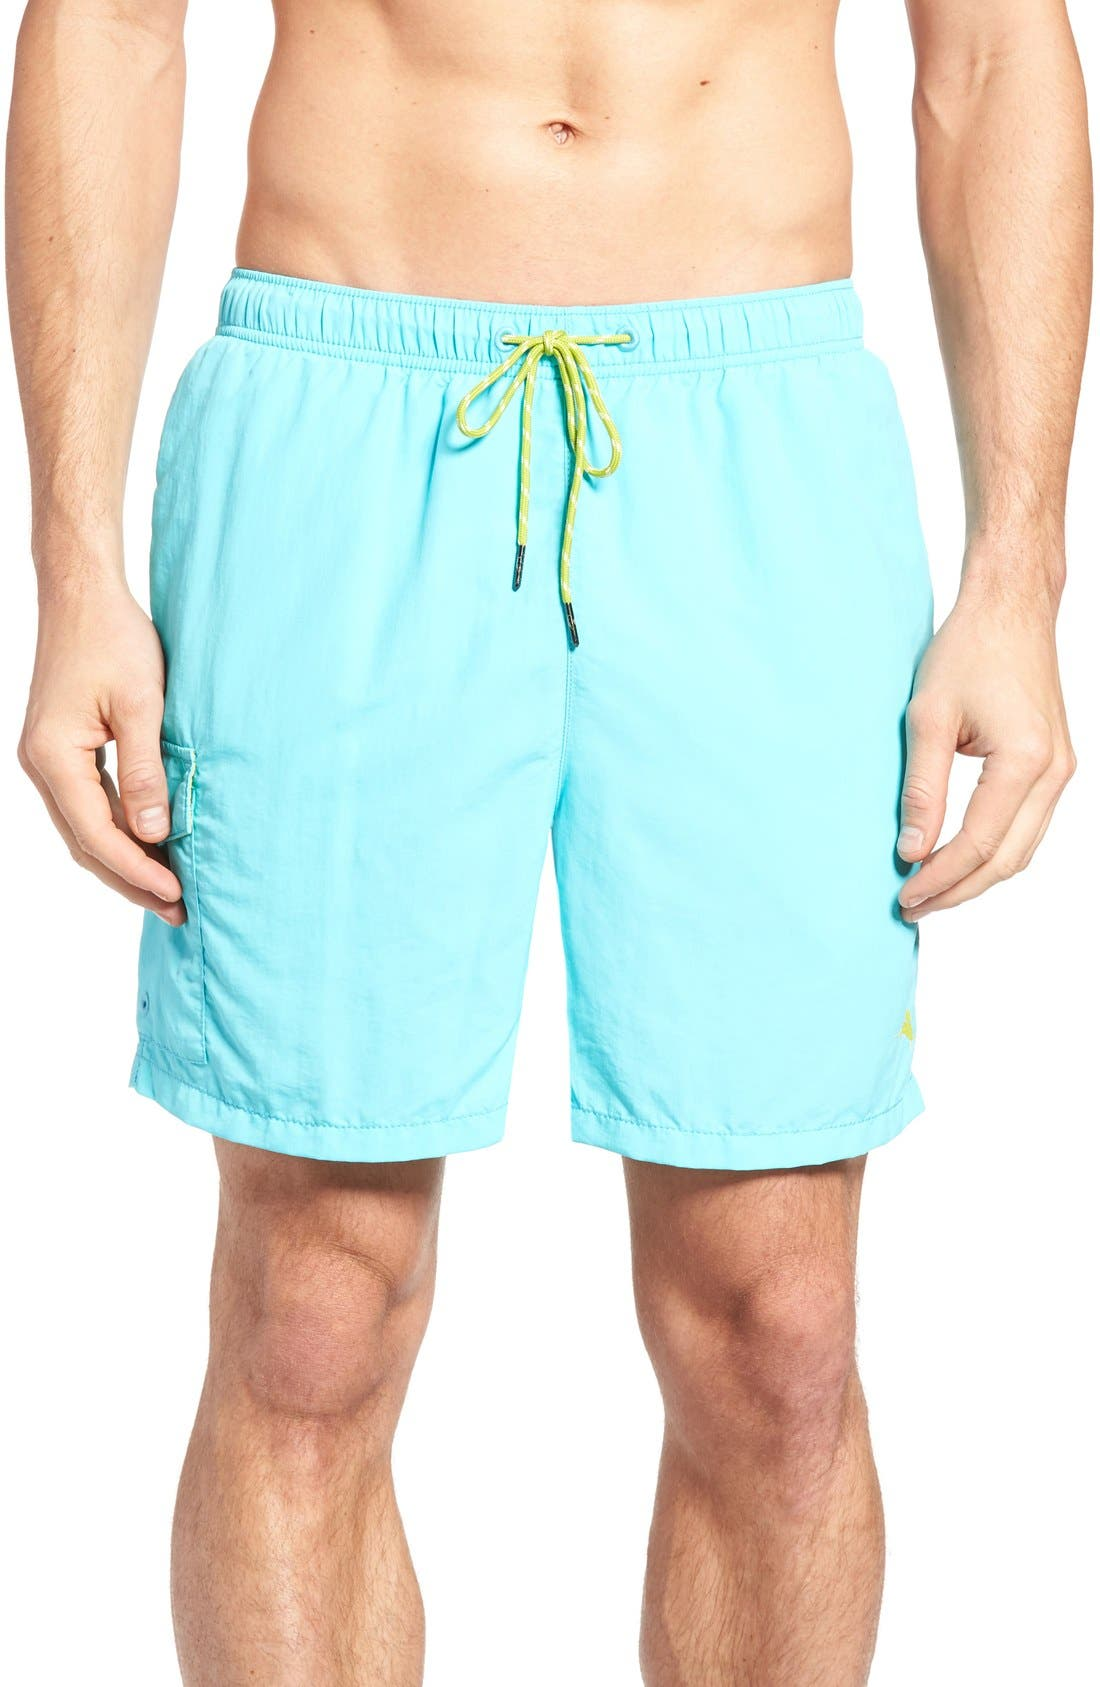 TOMMY BAHAMA 'Happy Go Cargo' Swim Trunks